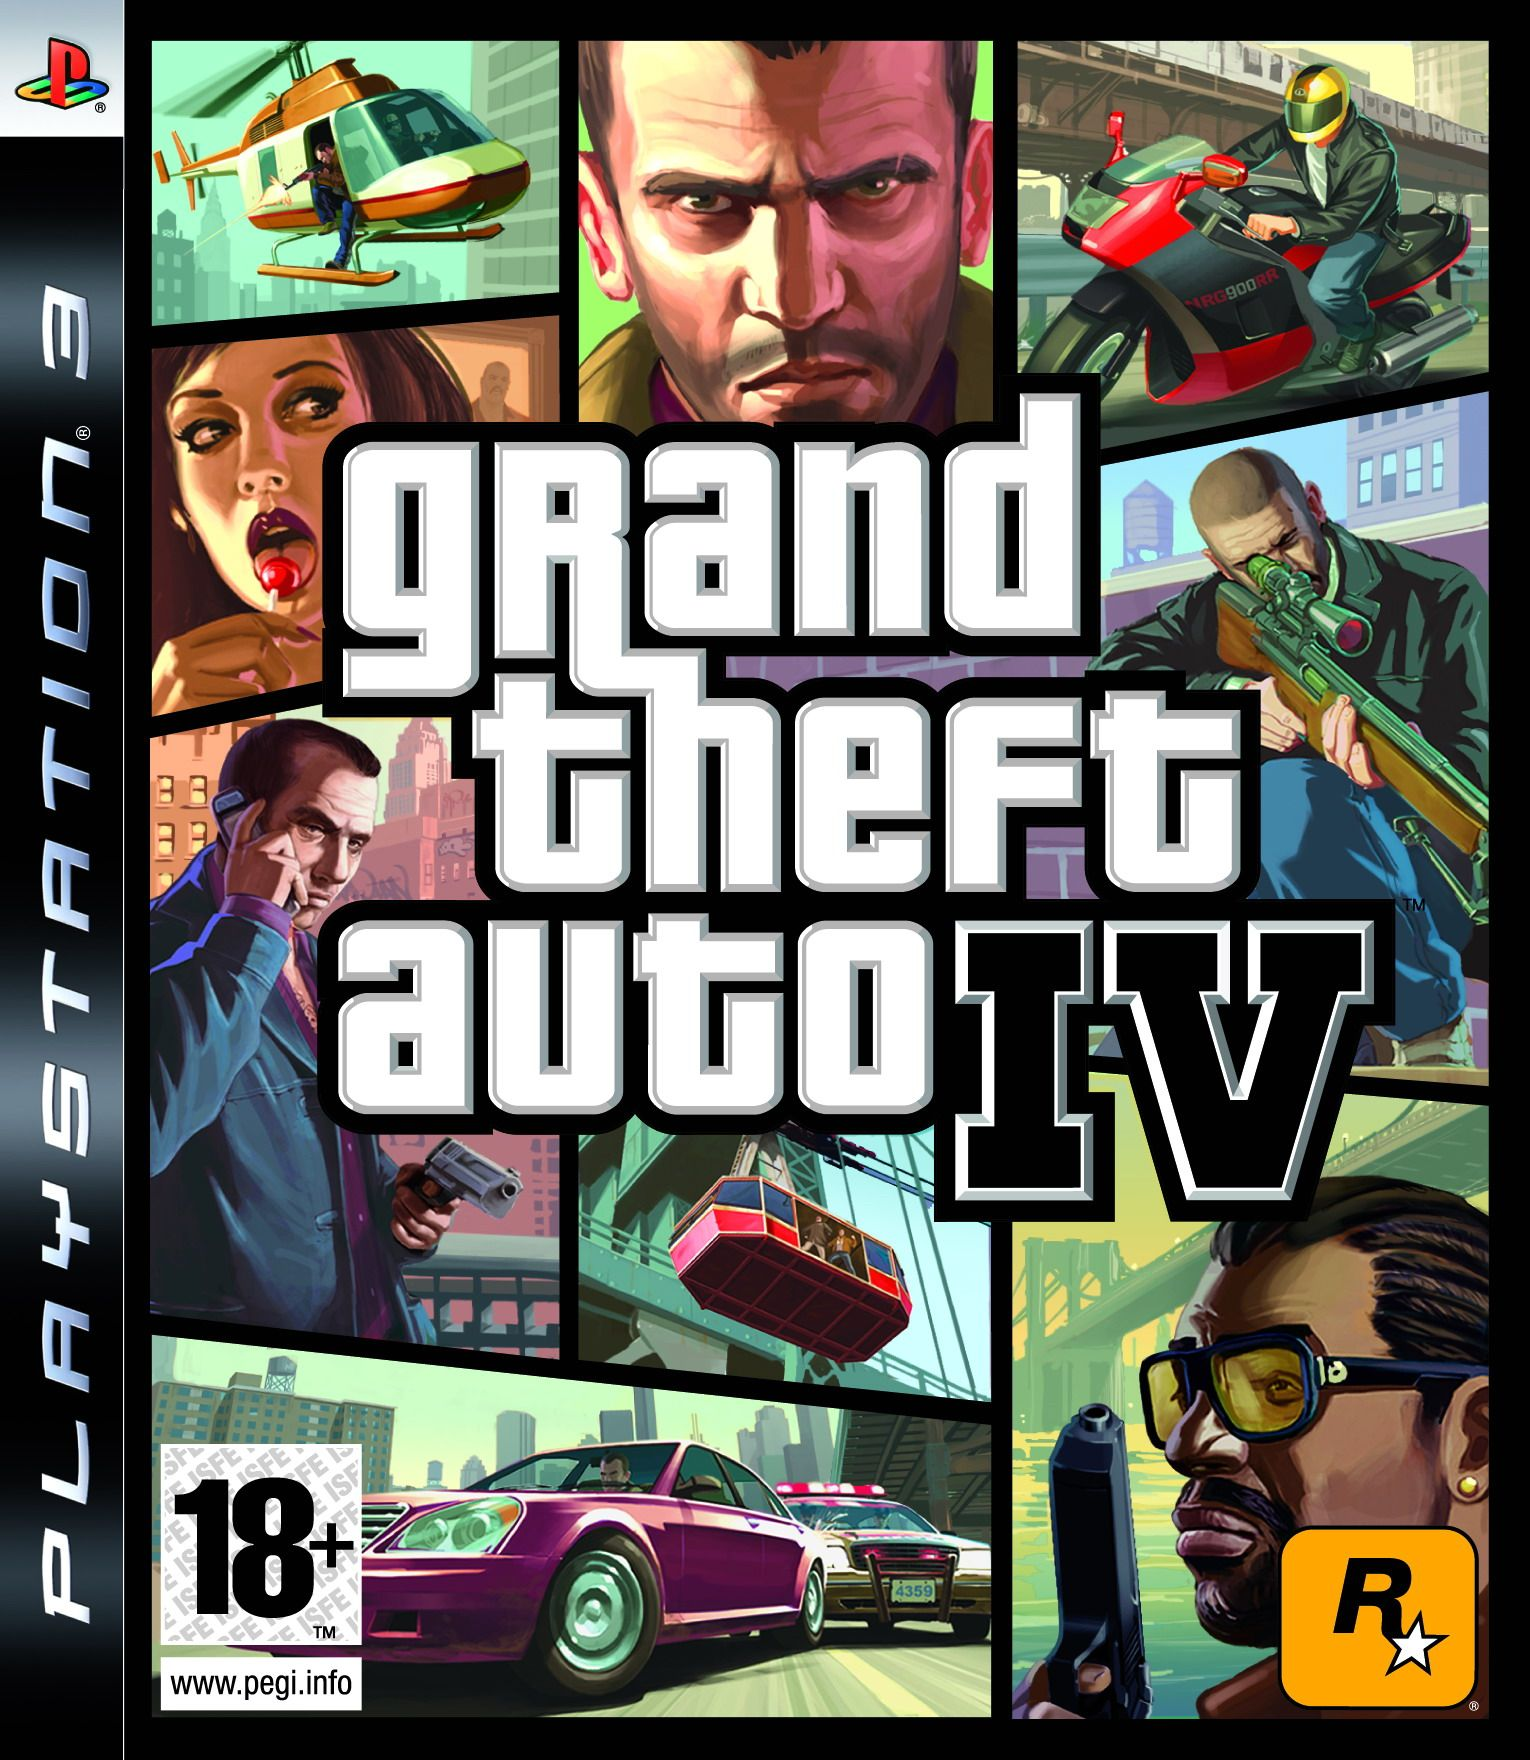 Grand Theft Auto Iv Ps3 Juegos De Ps3 Grand Theft Auto Videojuegos Wallpaper